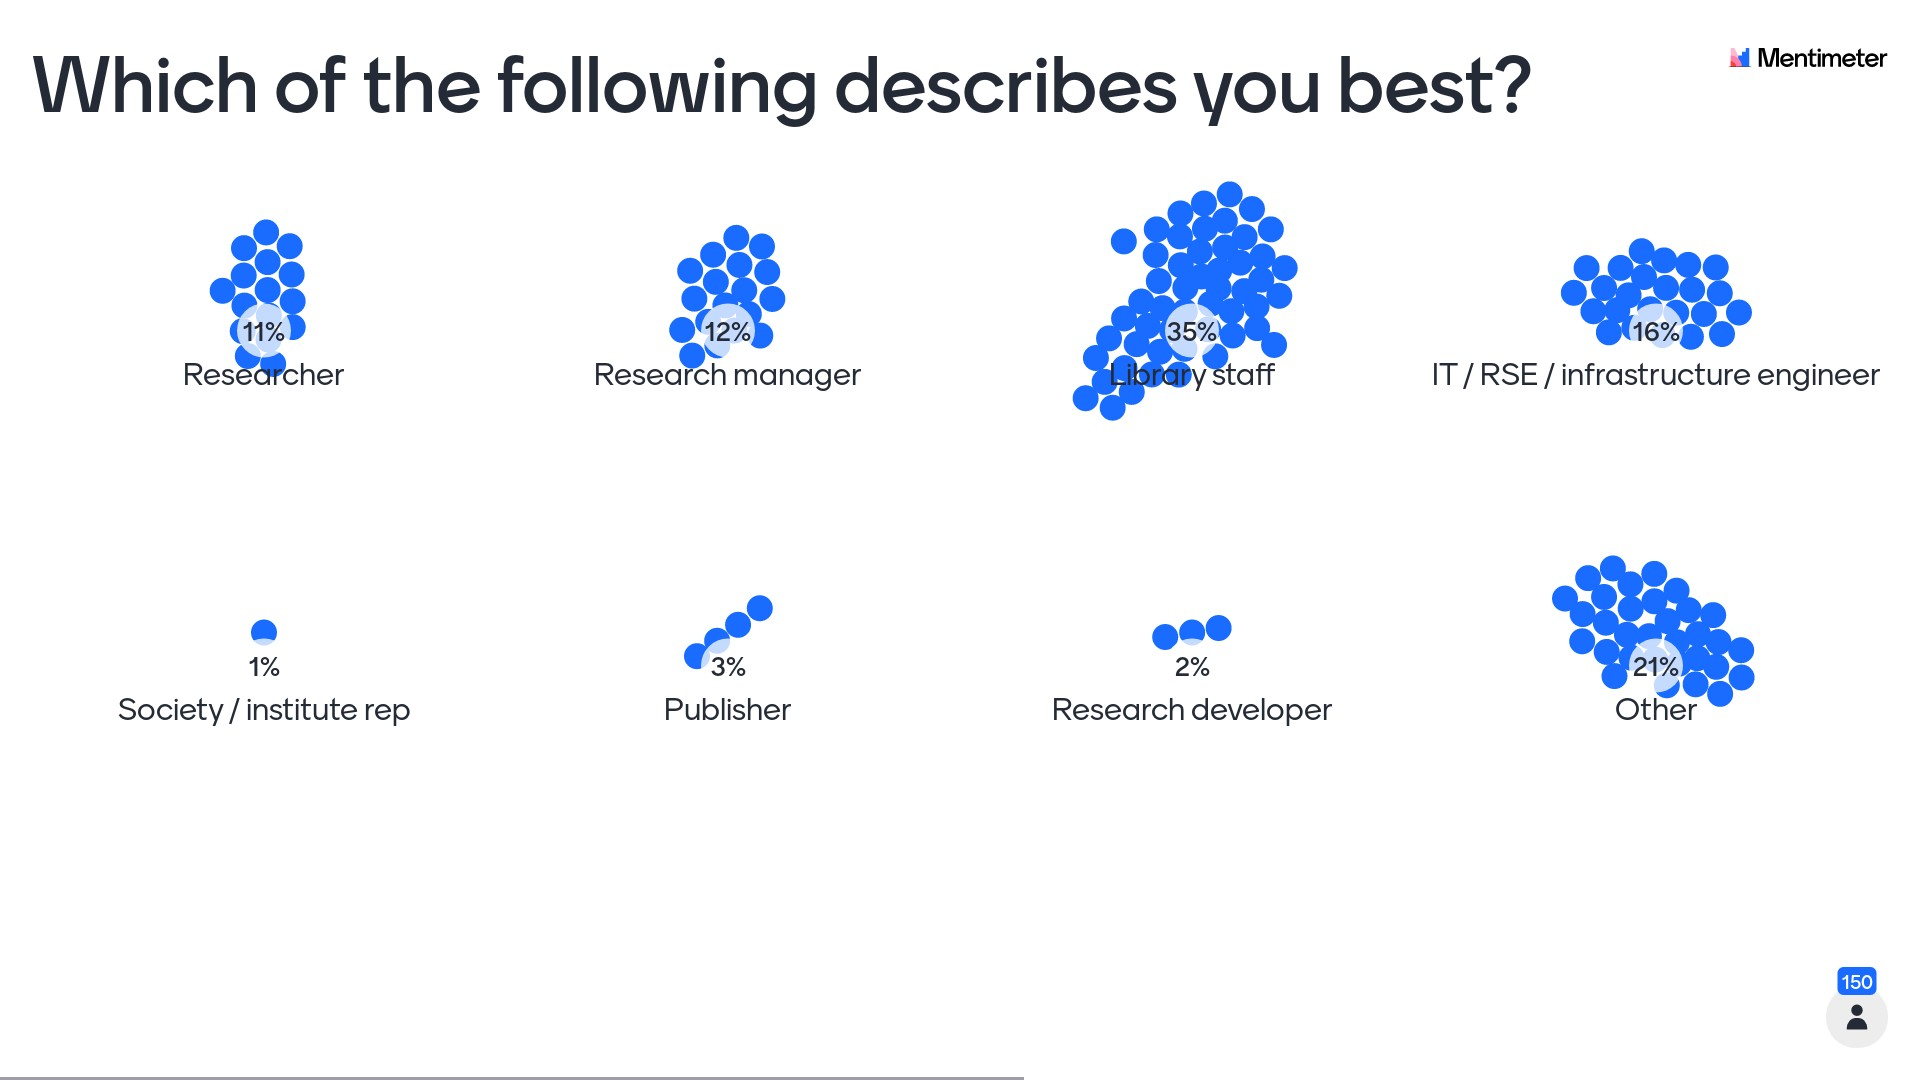 Attendees were asked which of the following roles described them best - this image summarises the answers: Research 11%, Research manager 12%, Library staff 35%, IT / RSE / Infrastructure engineer 16%, Society/institute rep 1%, Publisher 3%, Research developer 2%, Other 21%